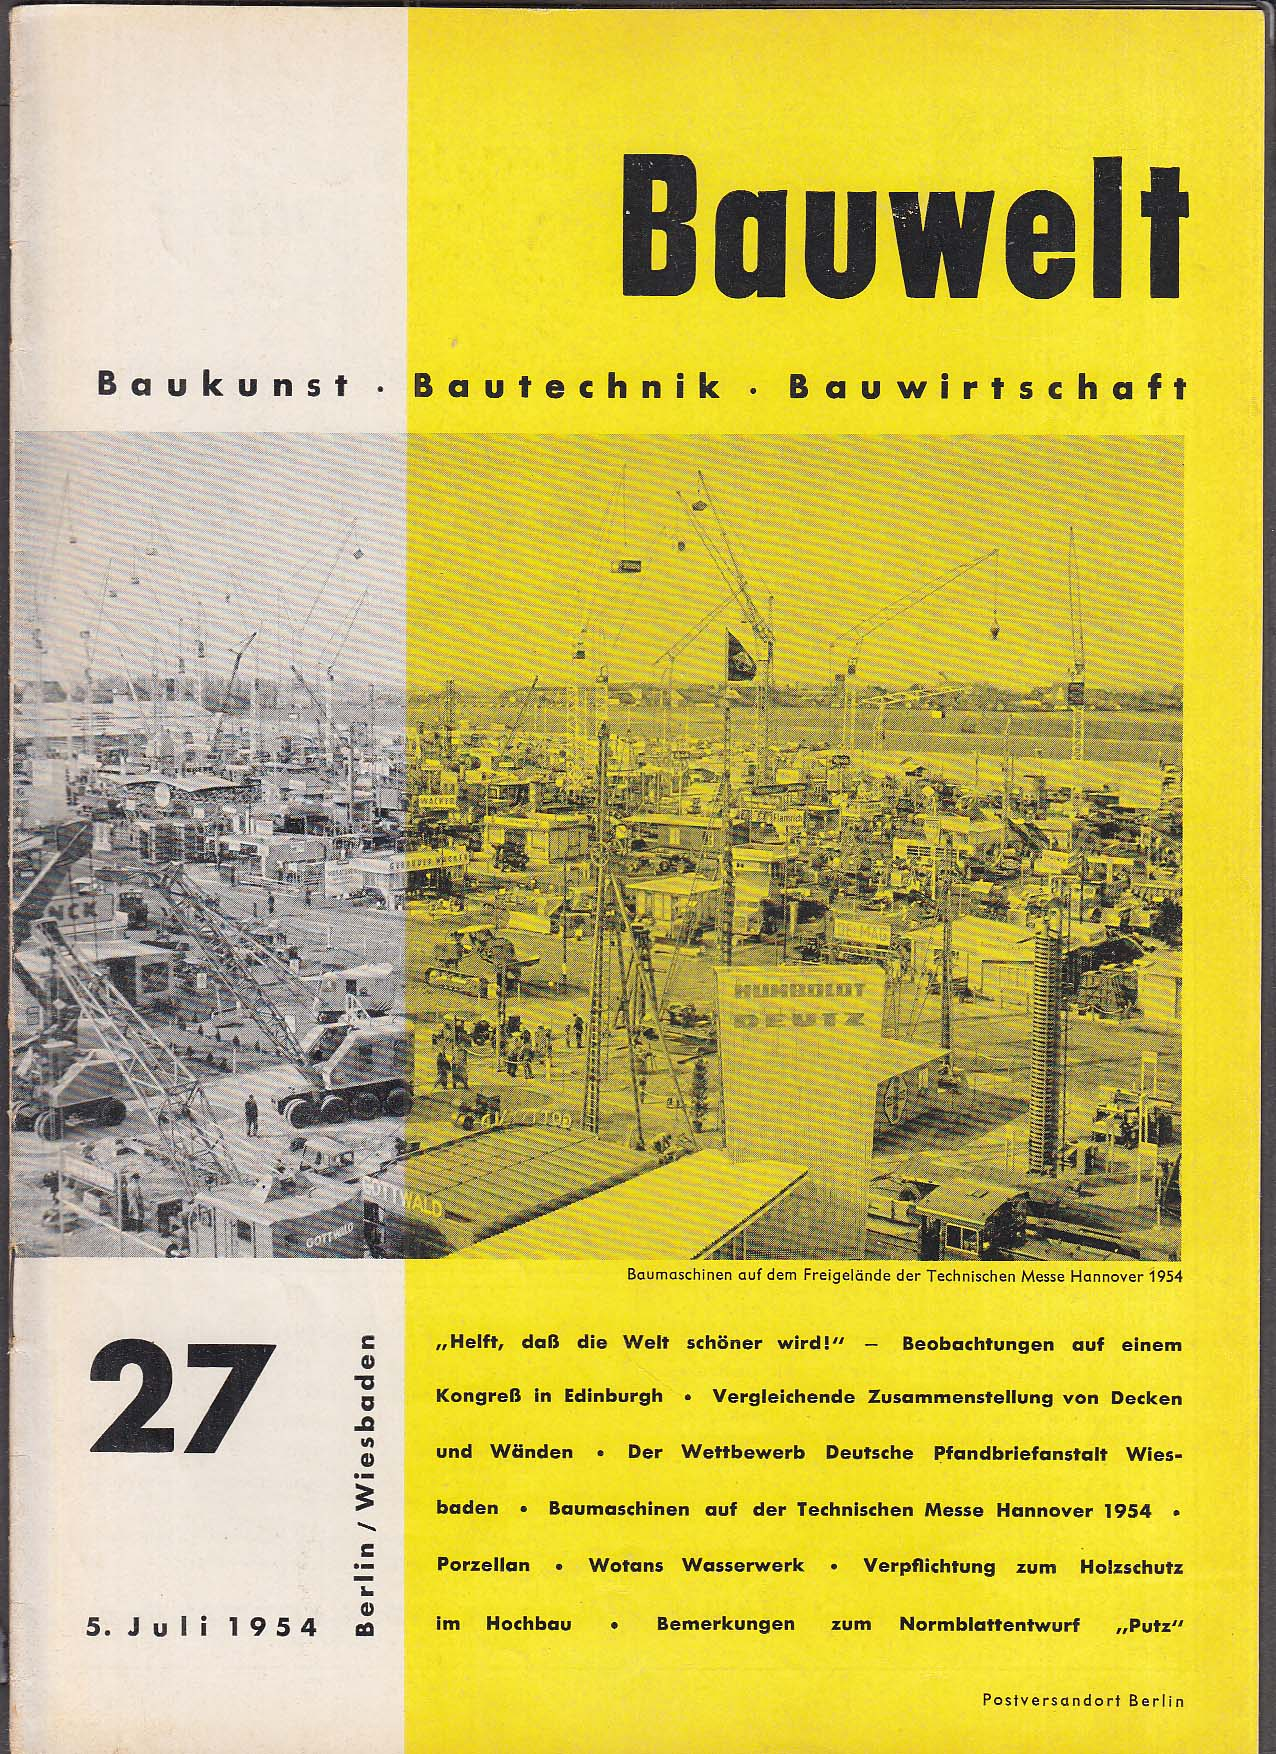 Bauwelt German architecture magazine 7/5/1954 27